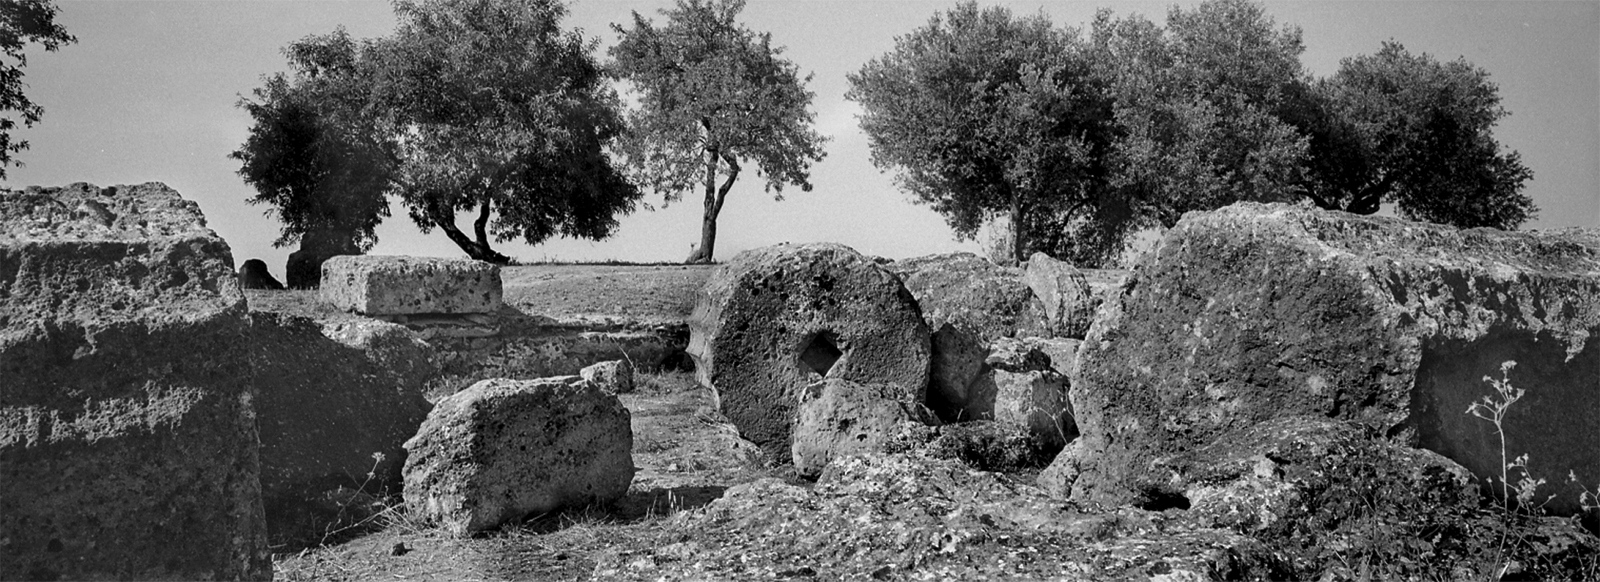 Art and Documentary Photography - Loading Archeologia_in_Sicilia___Fabio_Sgroi_058_.jpg